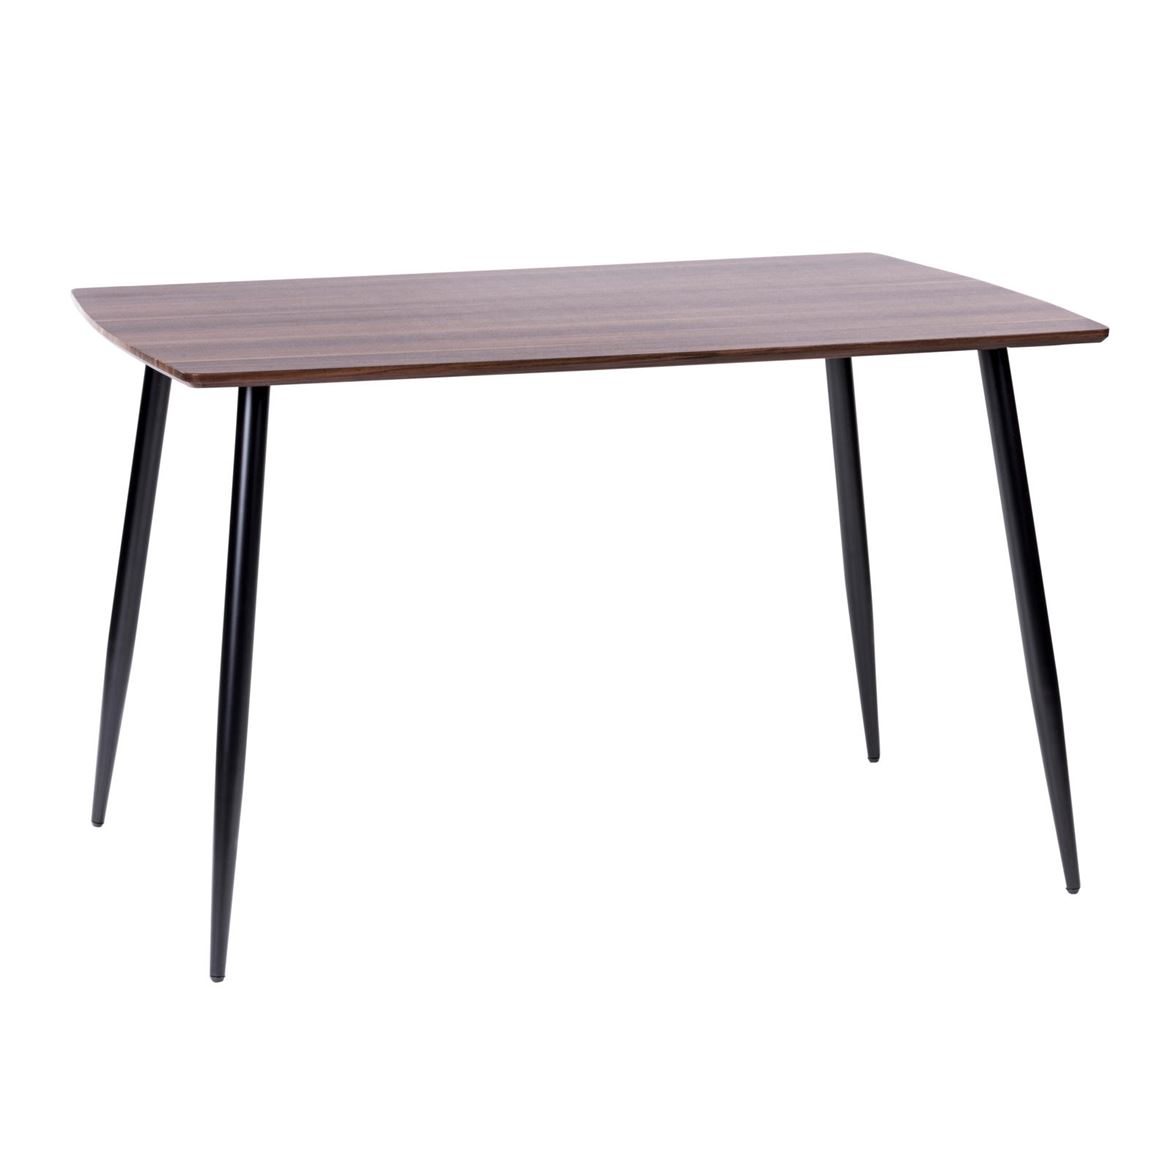 AIDEN Table naturel H 74 x Larg. 80 x Long. 120 cm_aiden-table-naturel-h-74-x-larg--80-x-long--120-cm